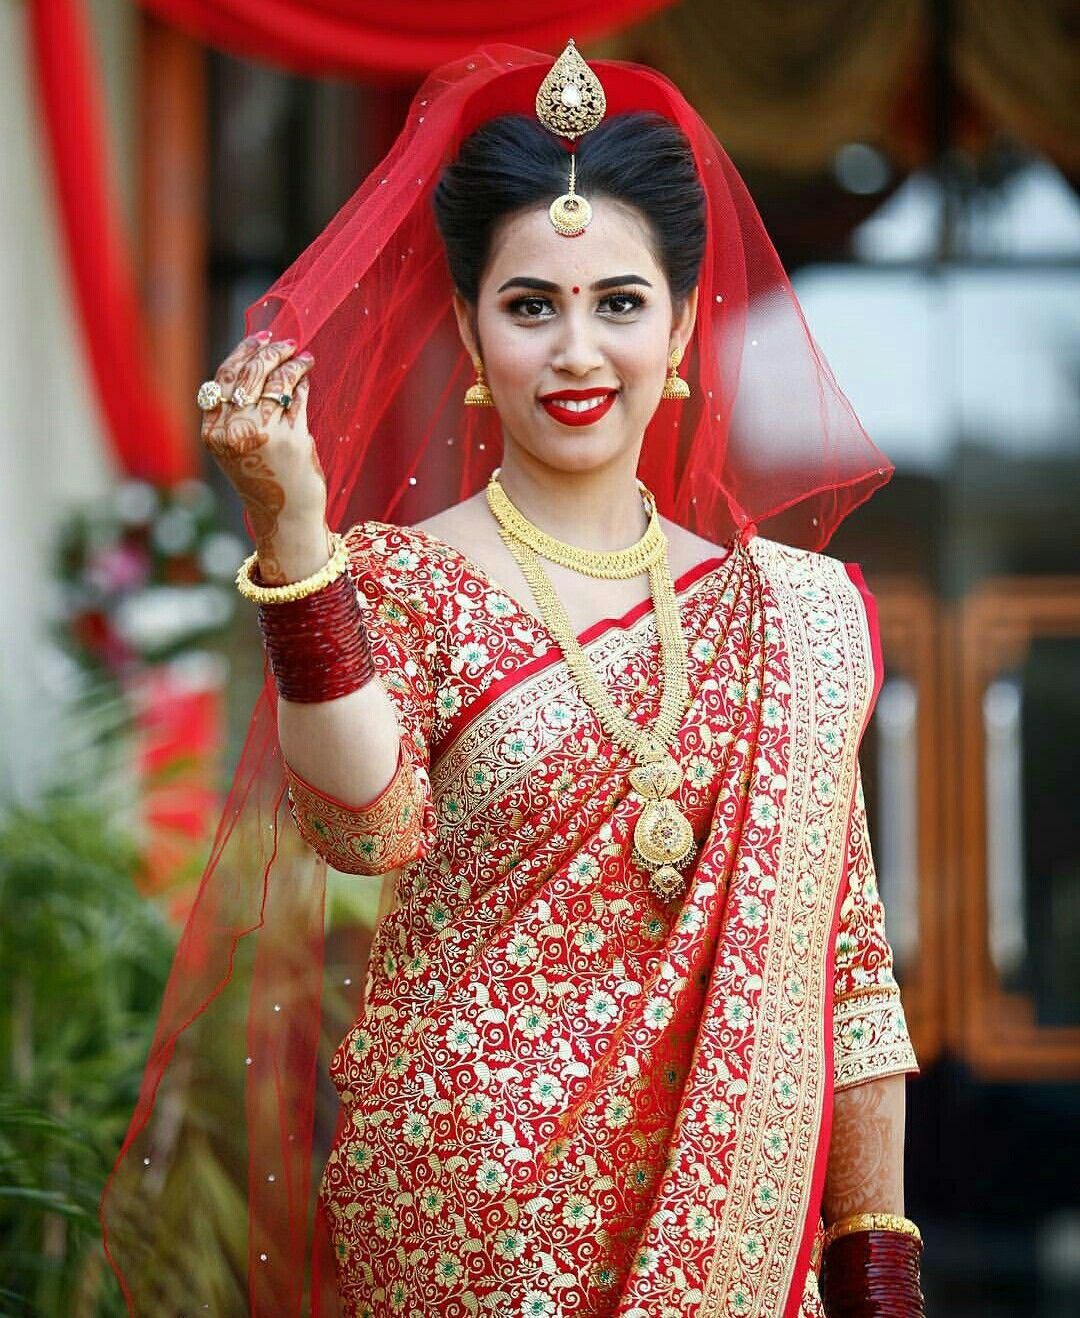 nepali wedding tradition nepal marriage bride makeup